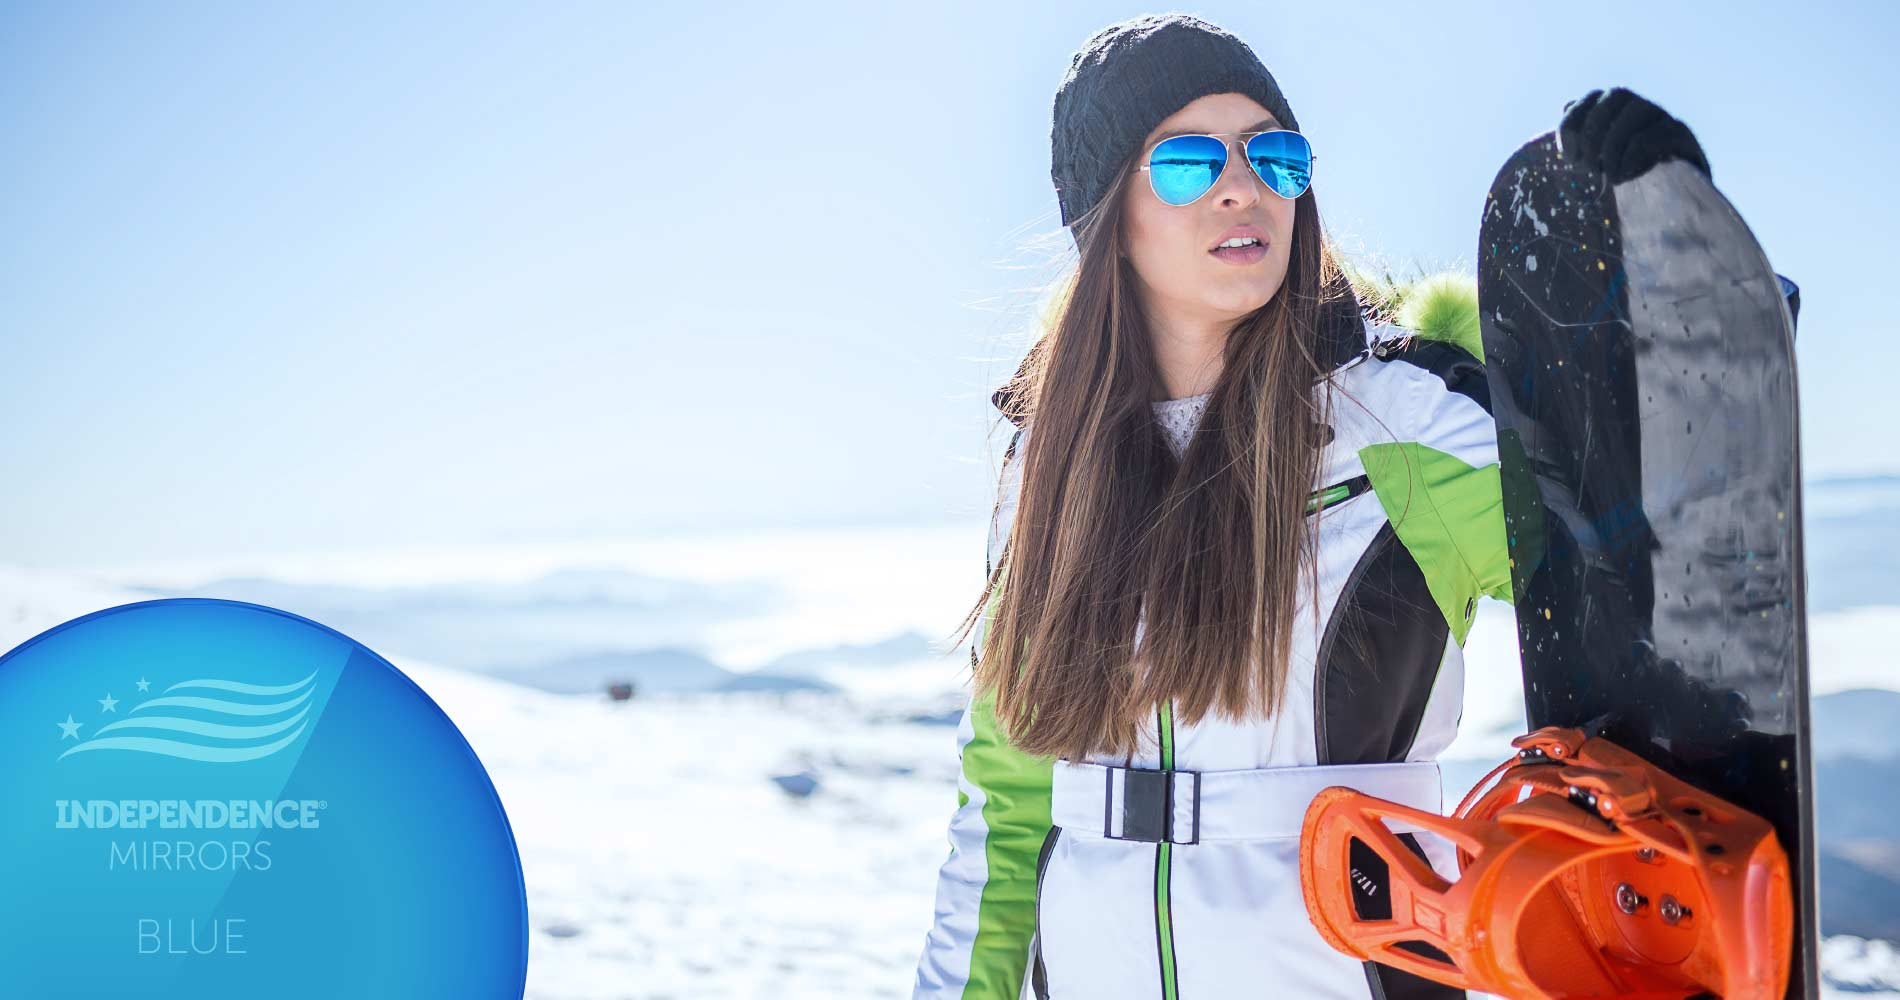 Young woman with a snowboard wearing blue-colored mirrored sunglasses